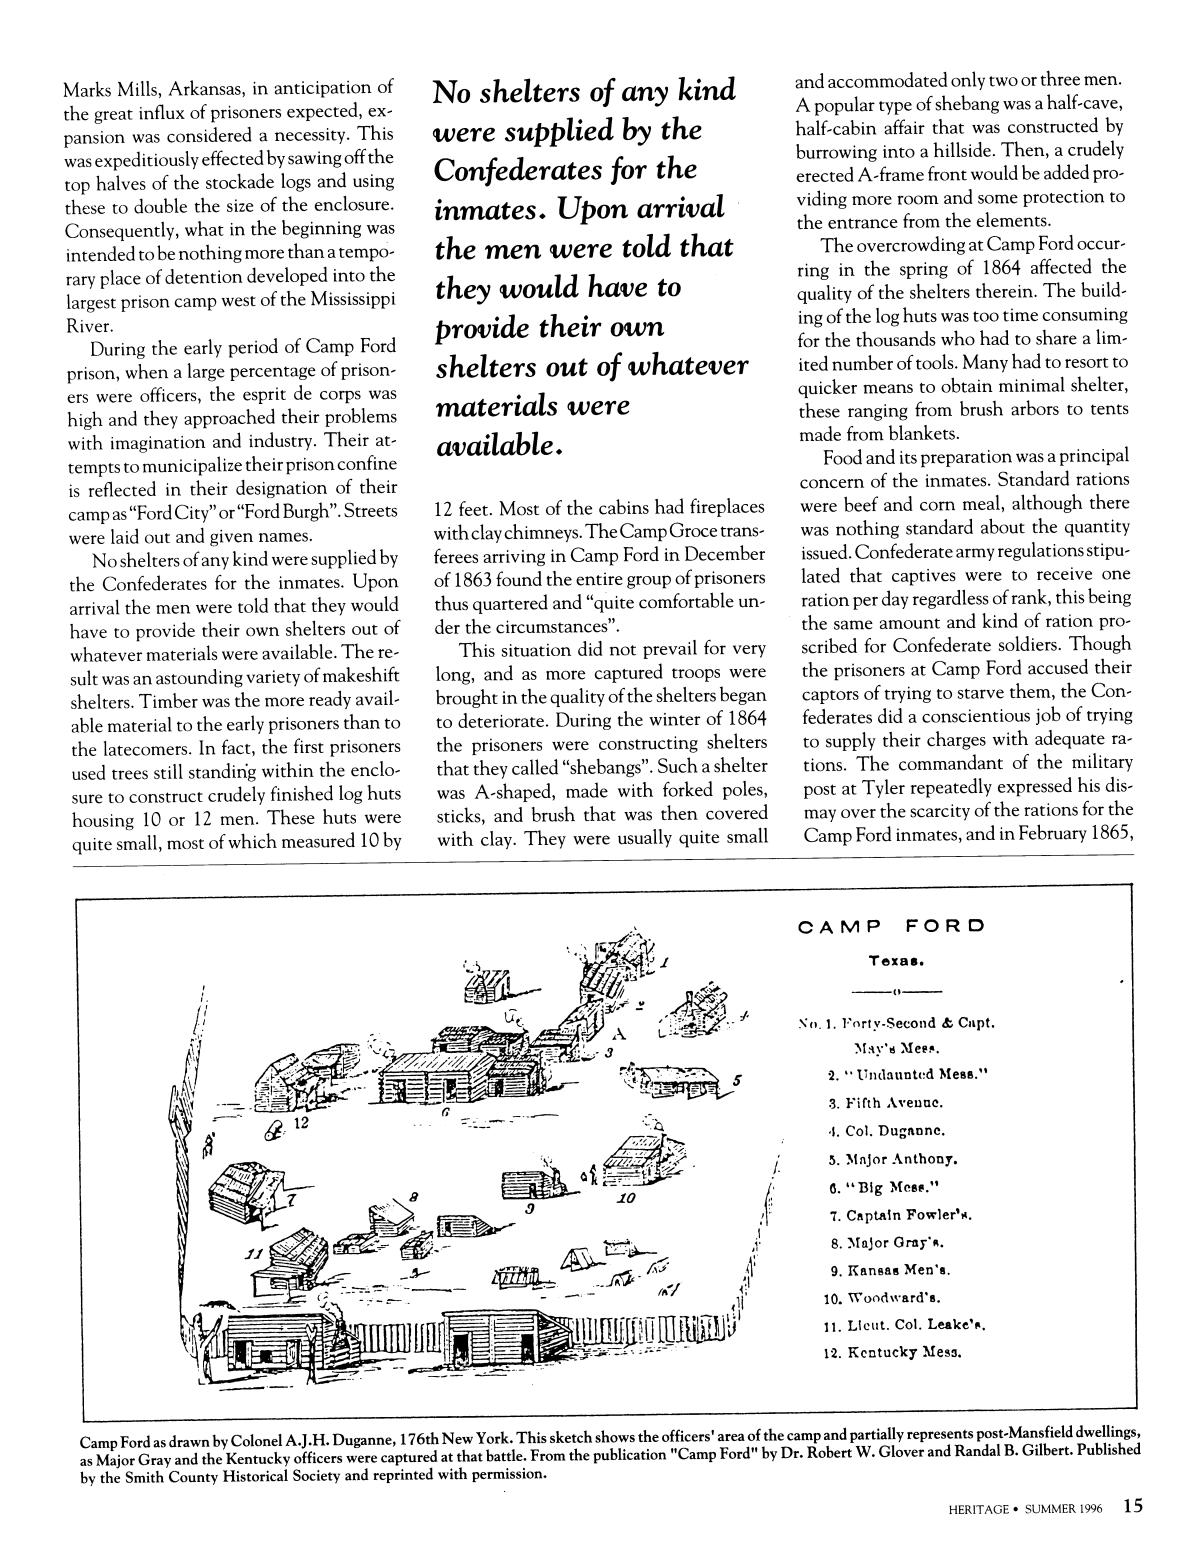 Heritage, Volume 14, Number 3, Summer 1996                                                                                                      15